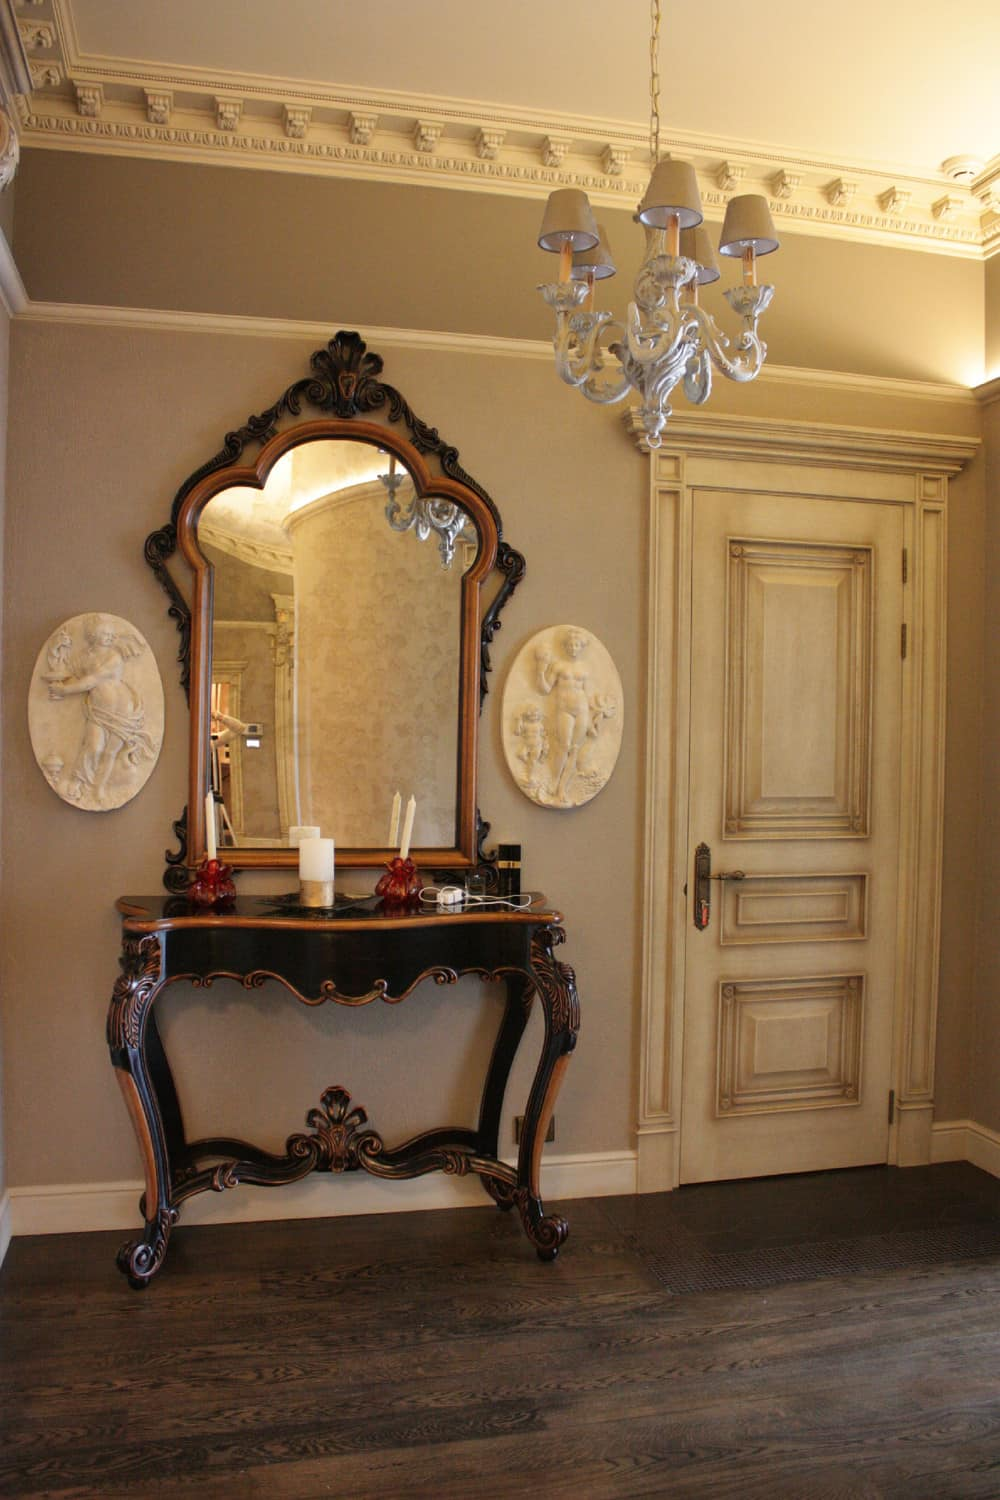 1920s Interior Design in Action: Real Apartment in Deep Retro. Large carved console mirror in the hallway